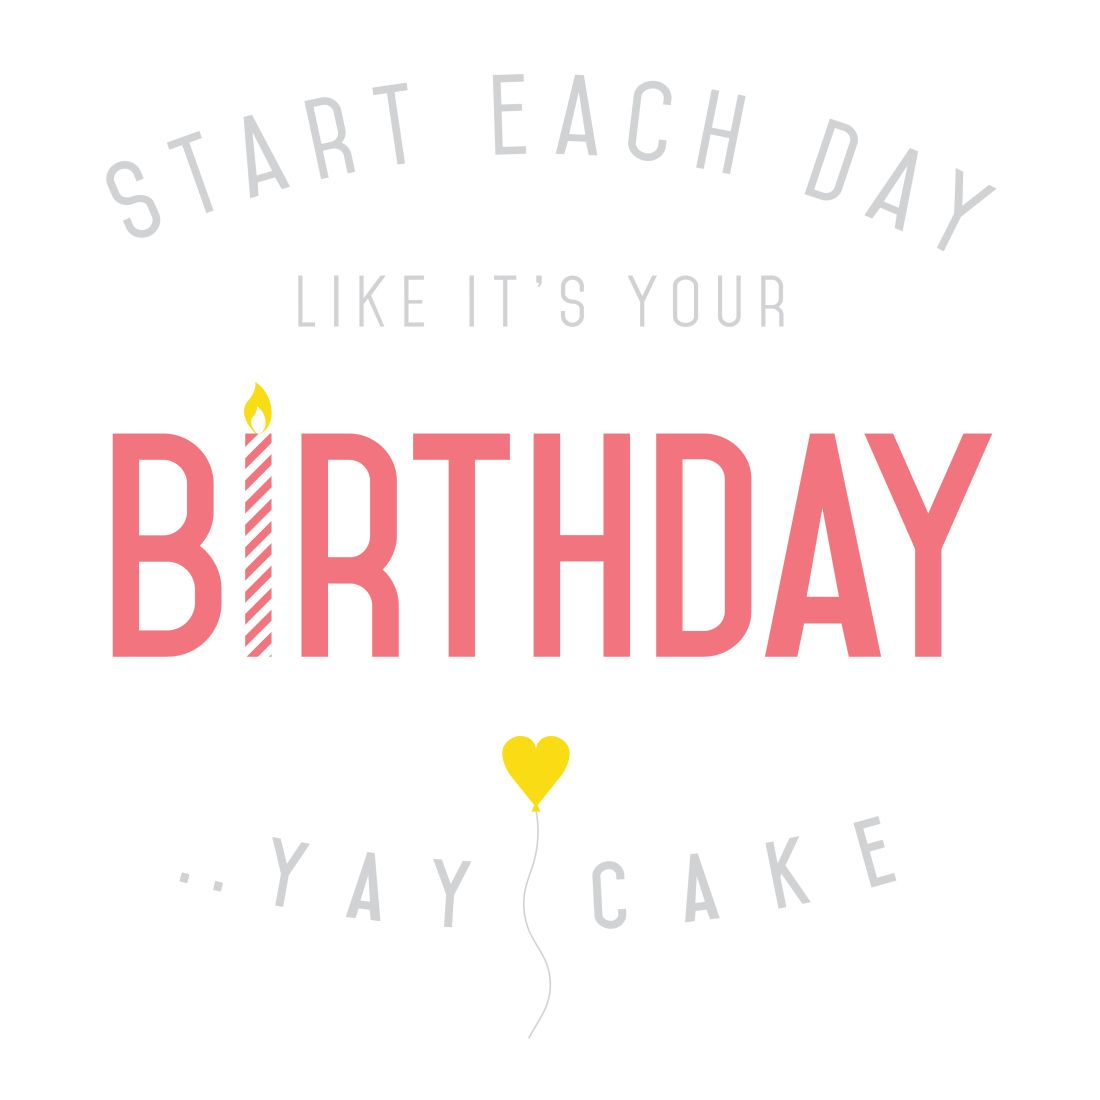 START EACH DAY LIKE IT'S YOUR BIRTHDAY by ingridesign